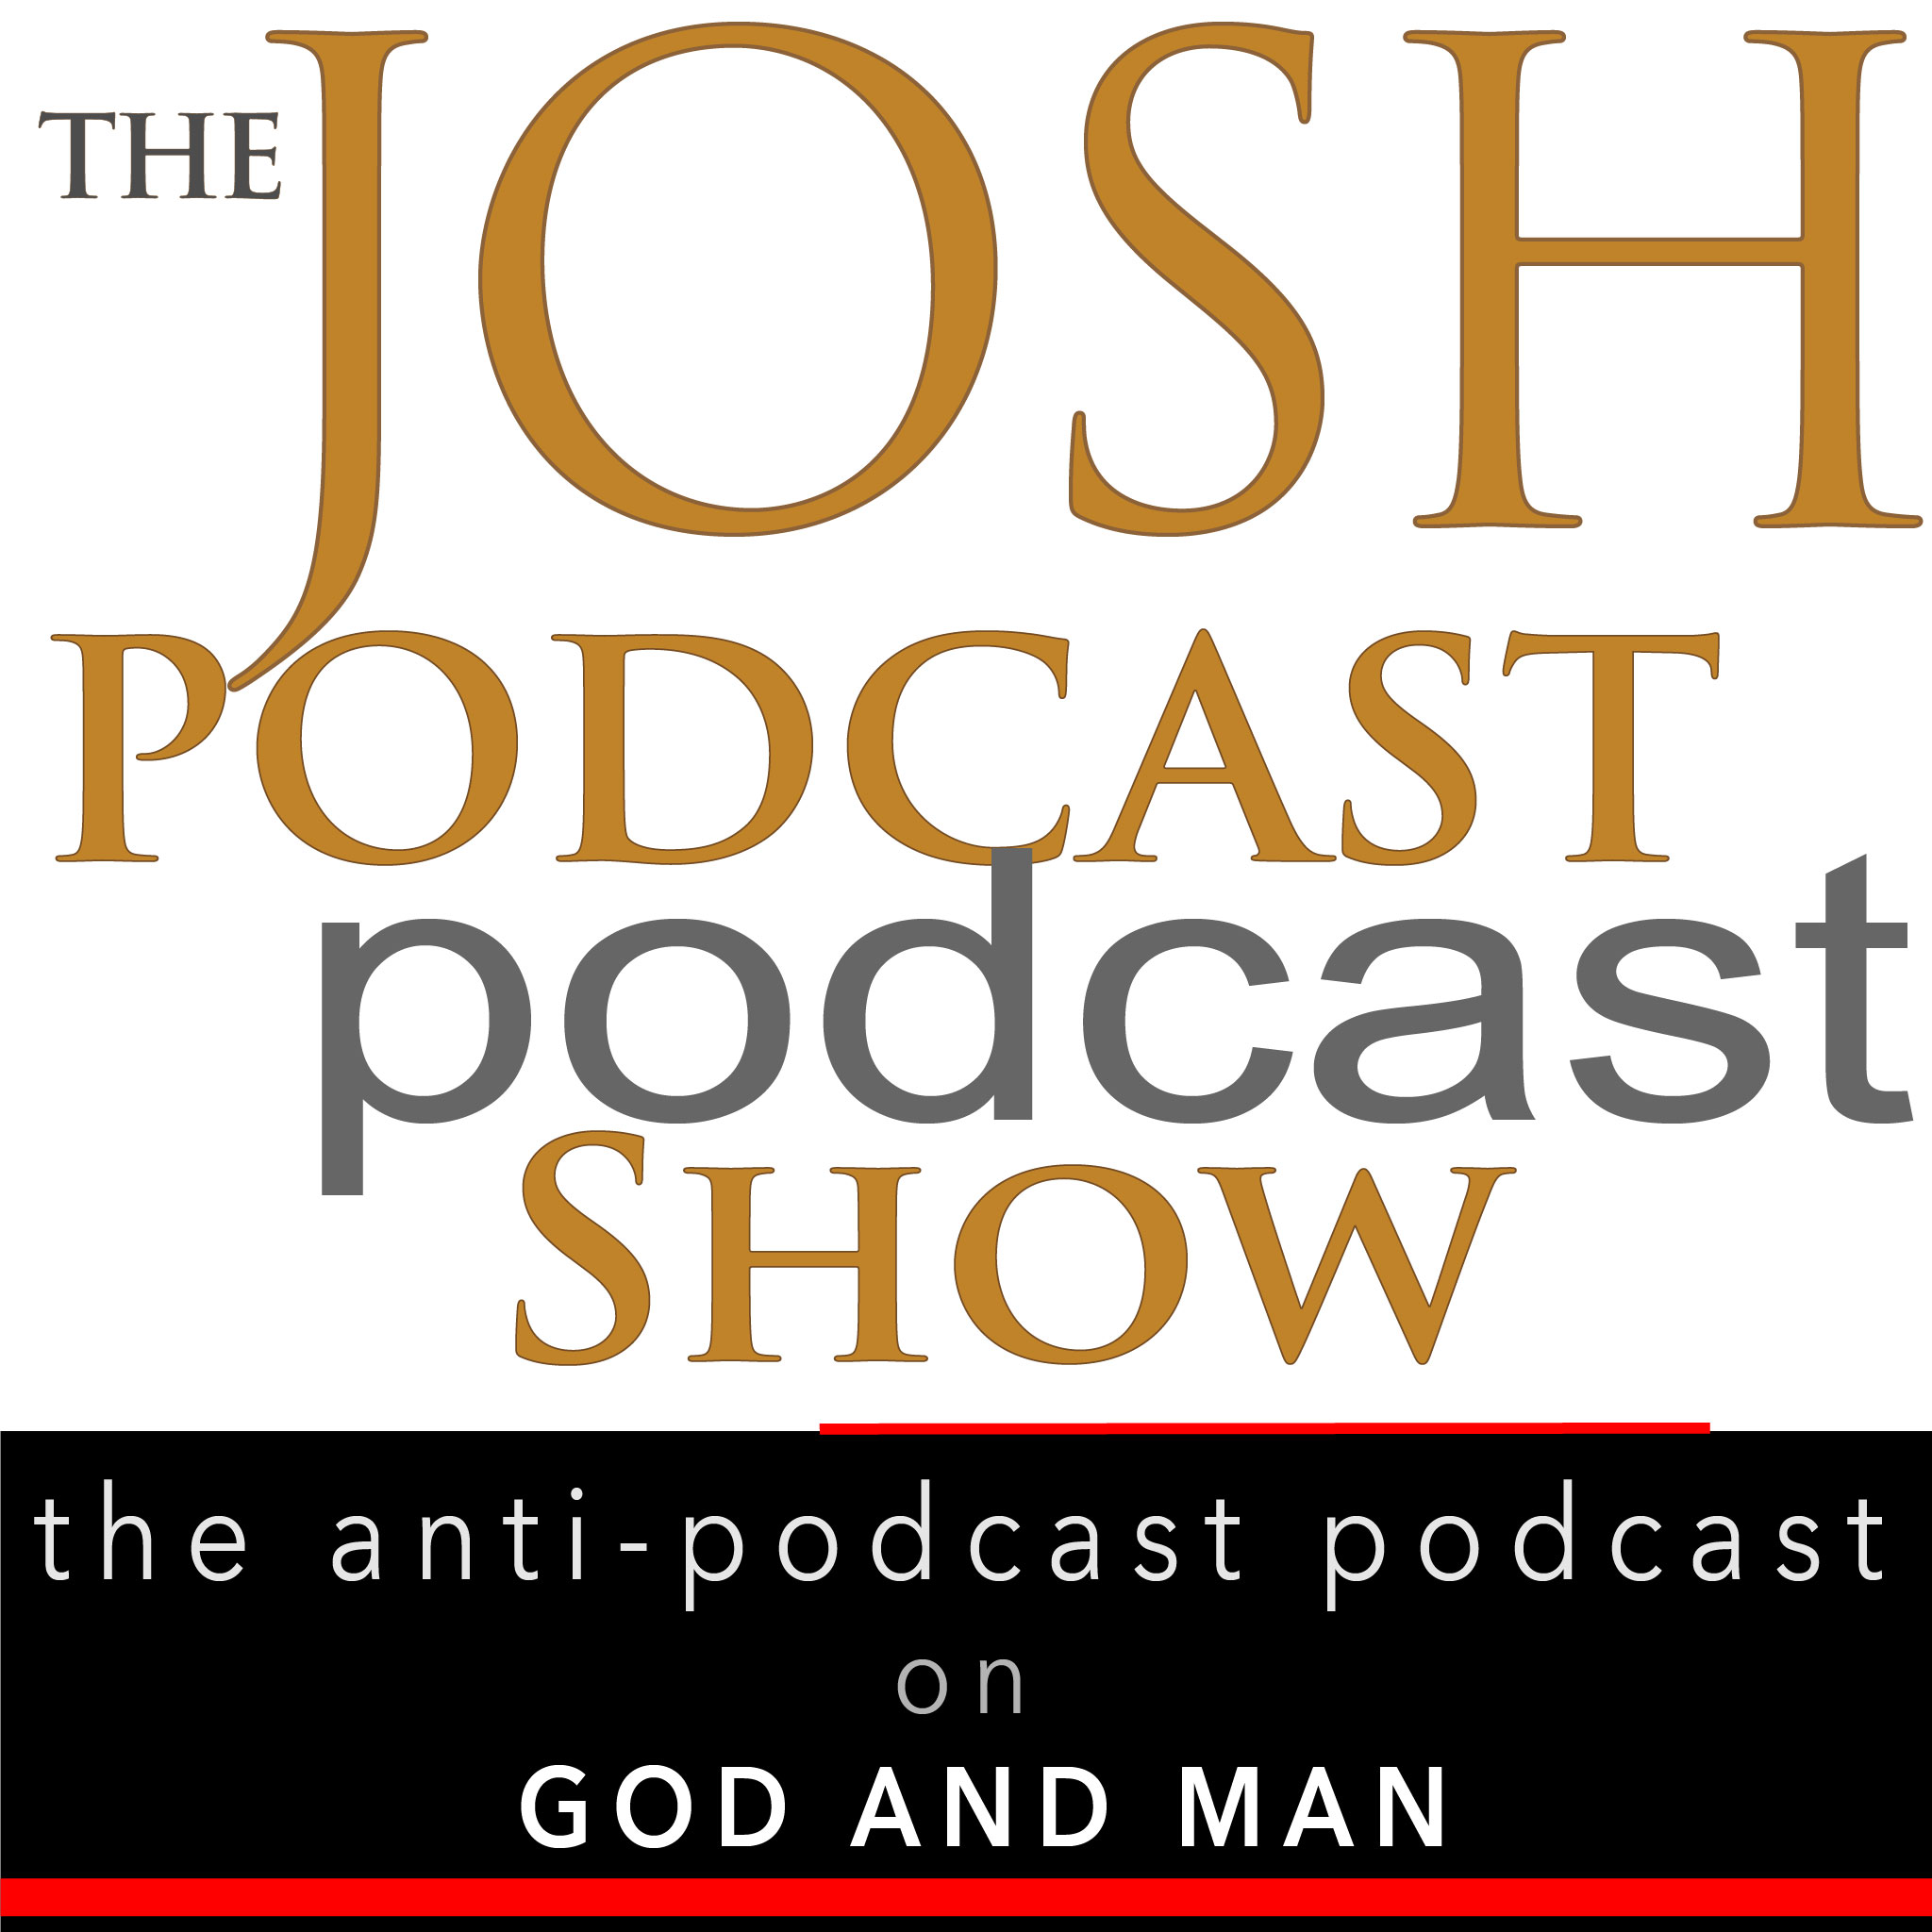 The Josh Podcast podcast Show: The Anti-Podcast podcast on God and Man